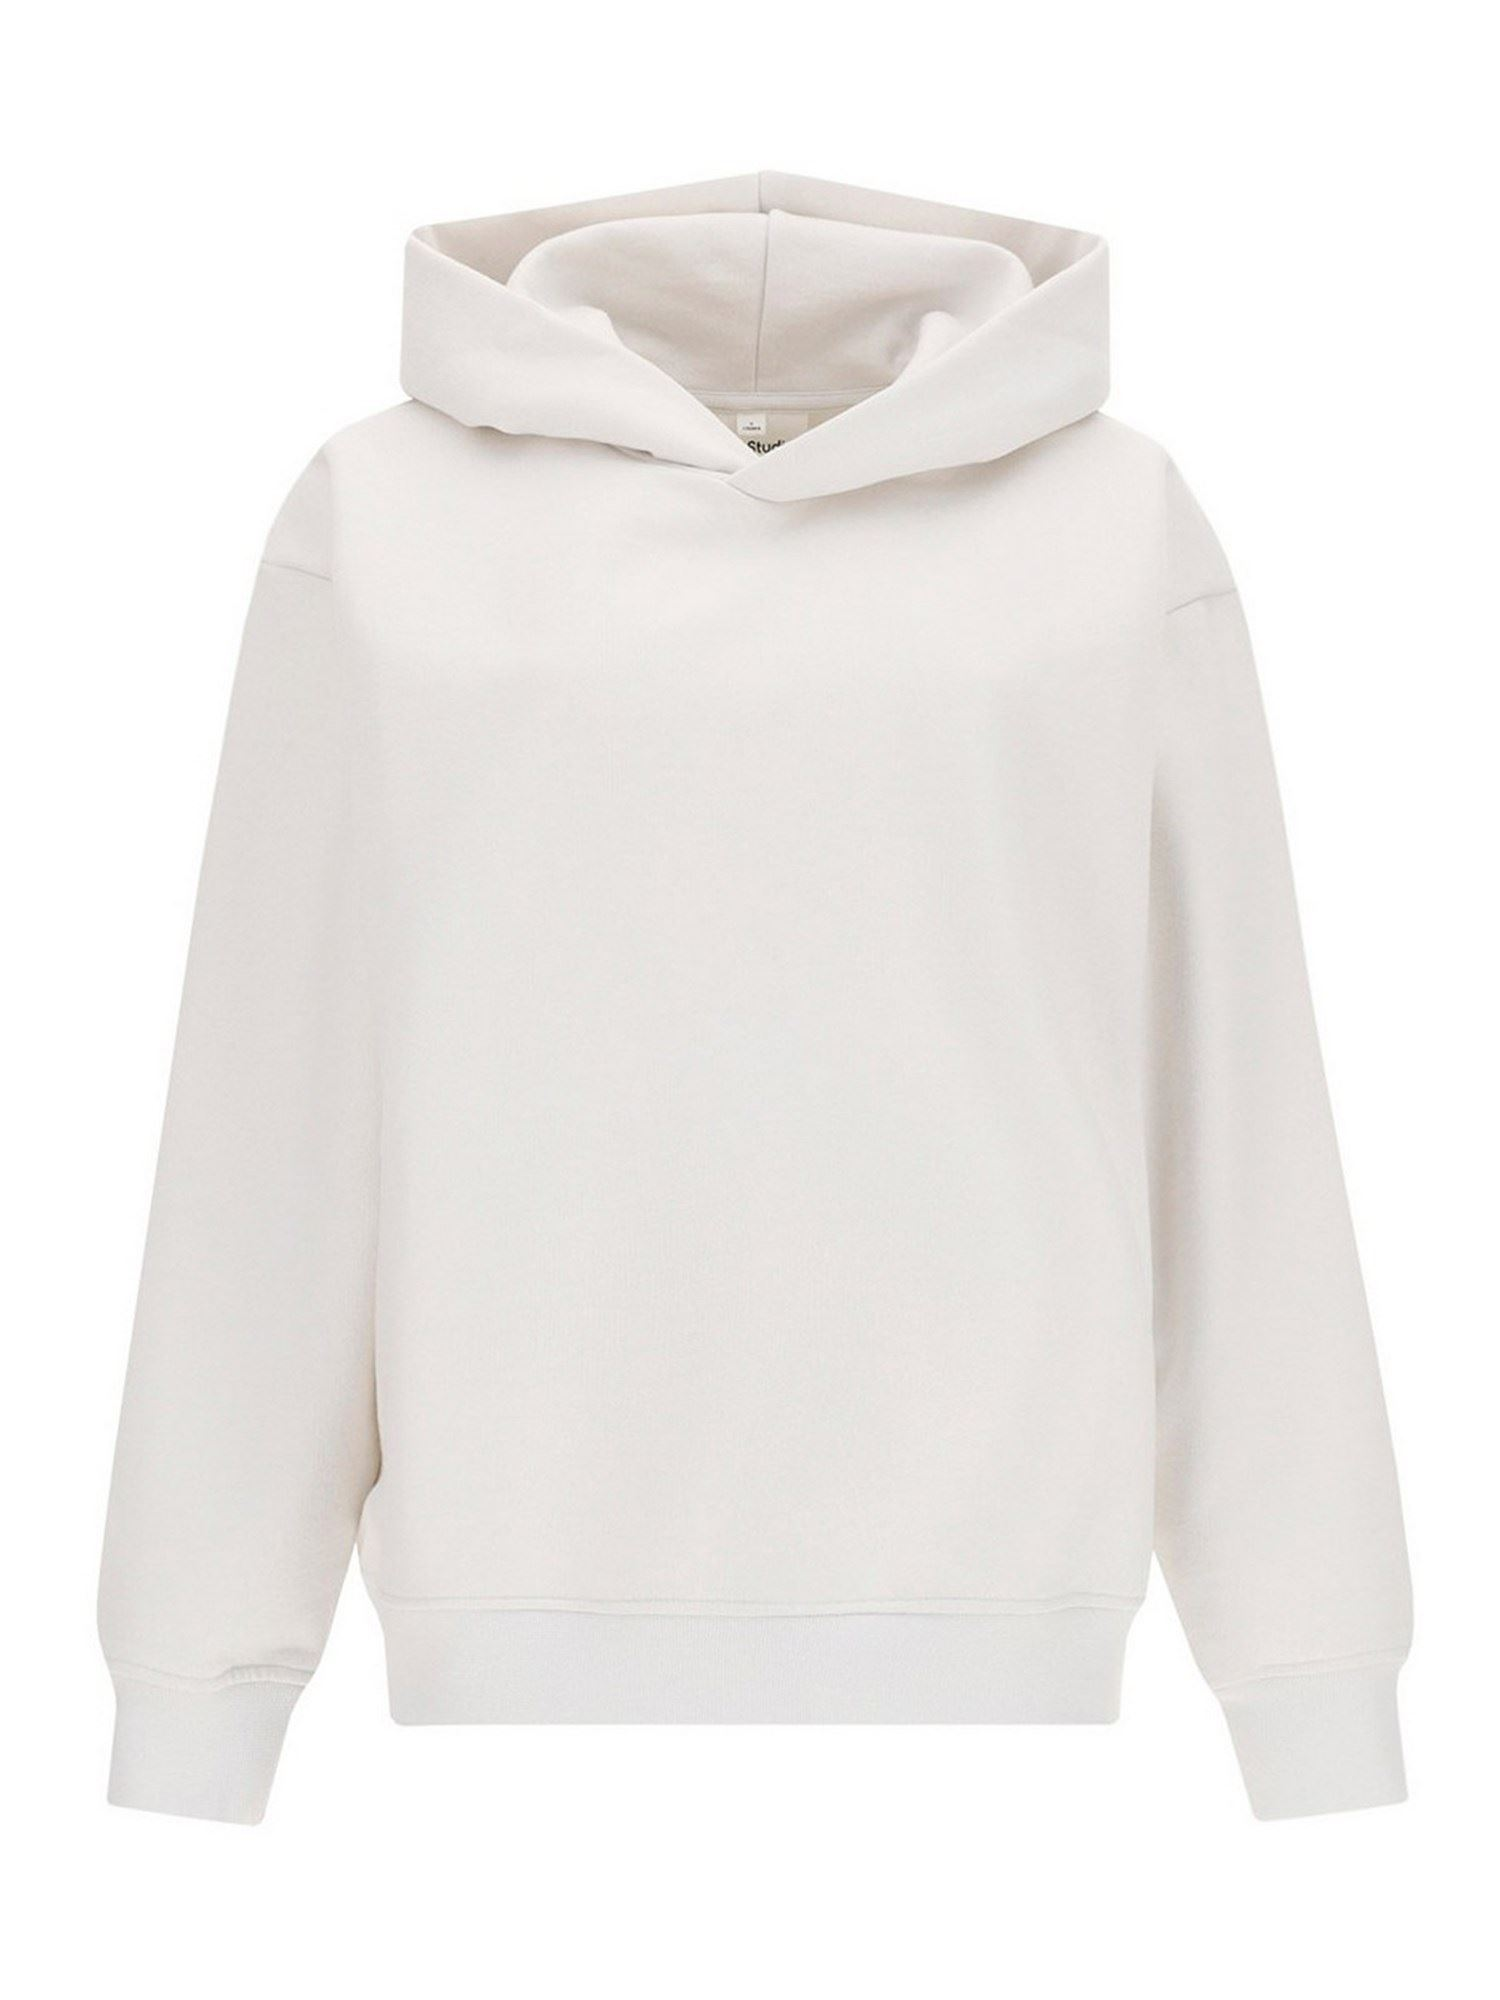 Acne Studios COTTON HOODIE IN WHITE